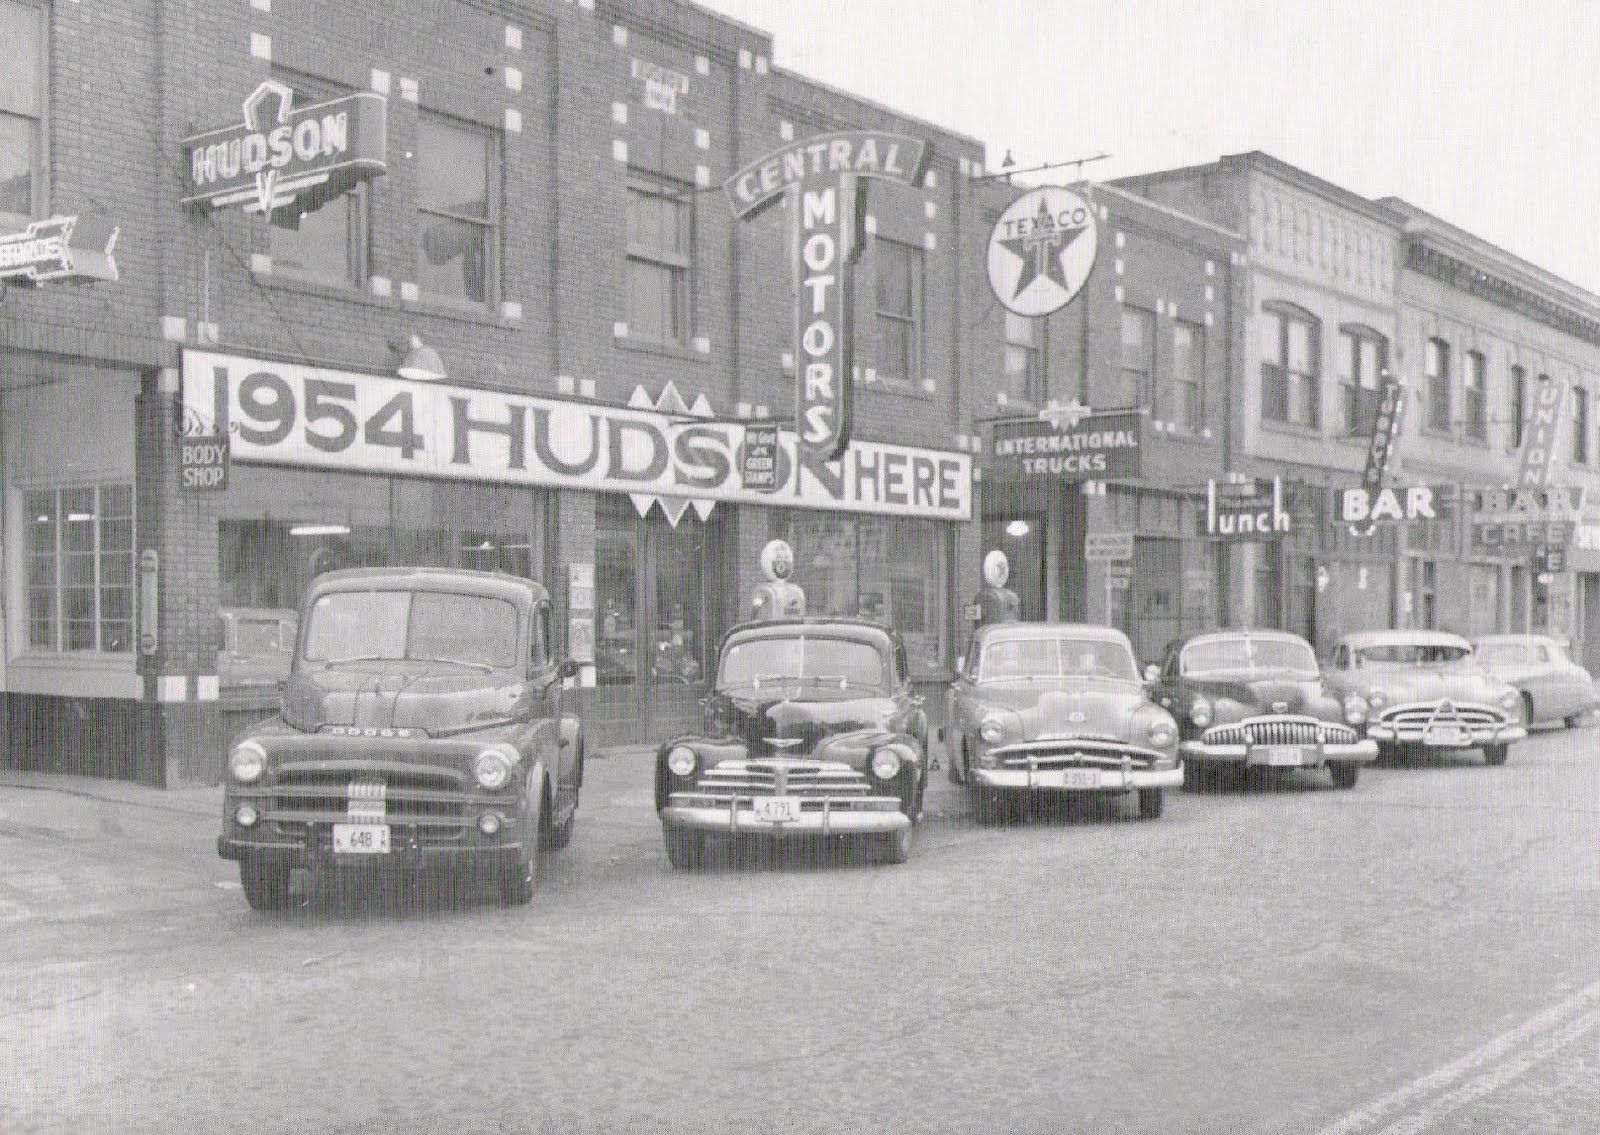 South side of the 200 block of sherman ave cda in 1954